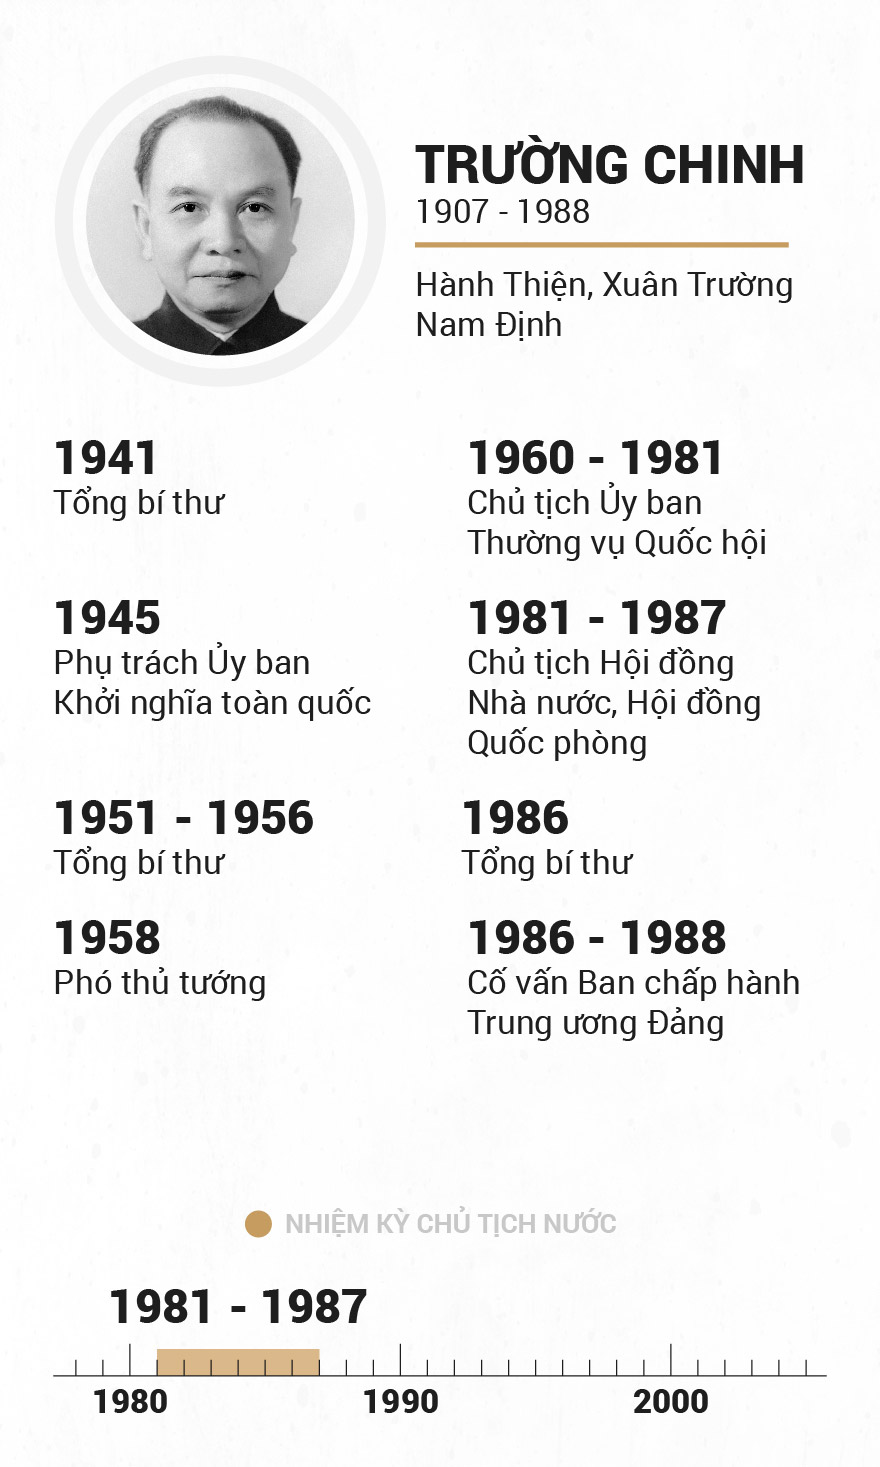 Infographic Chu tich nuoc qua cac thoi ky hinh anh 7